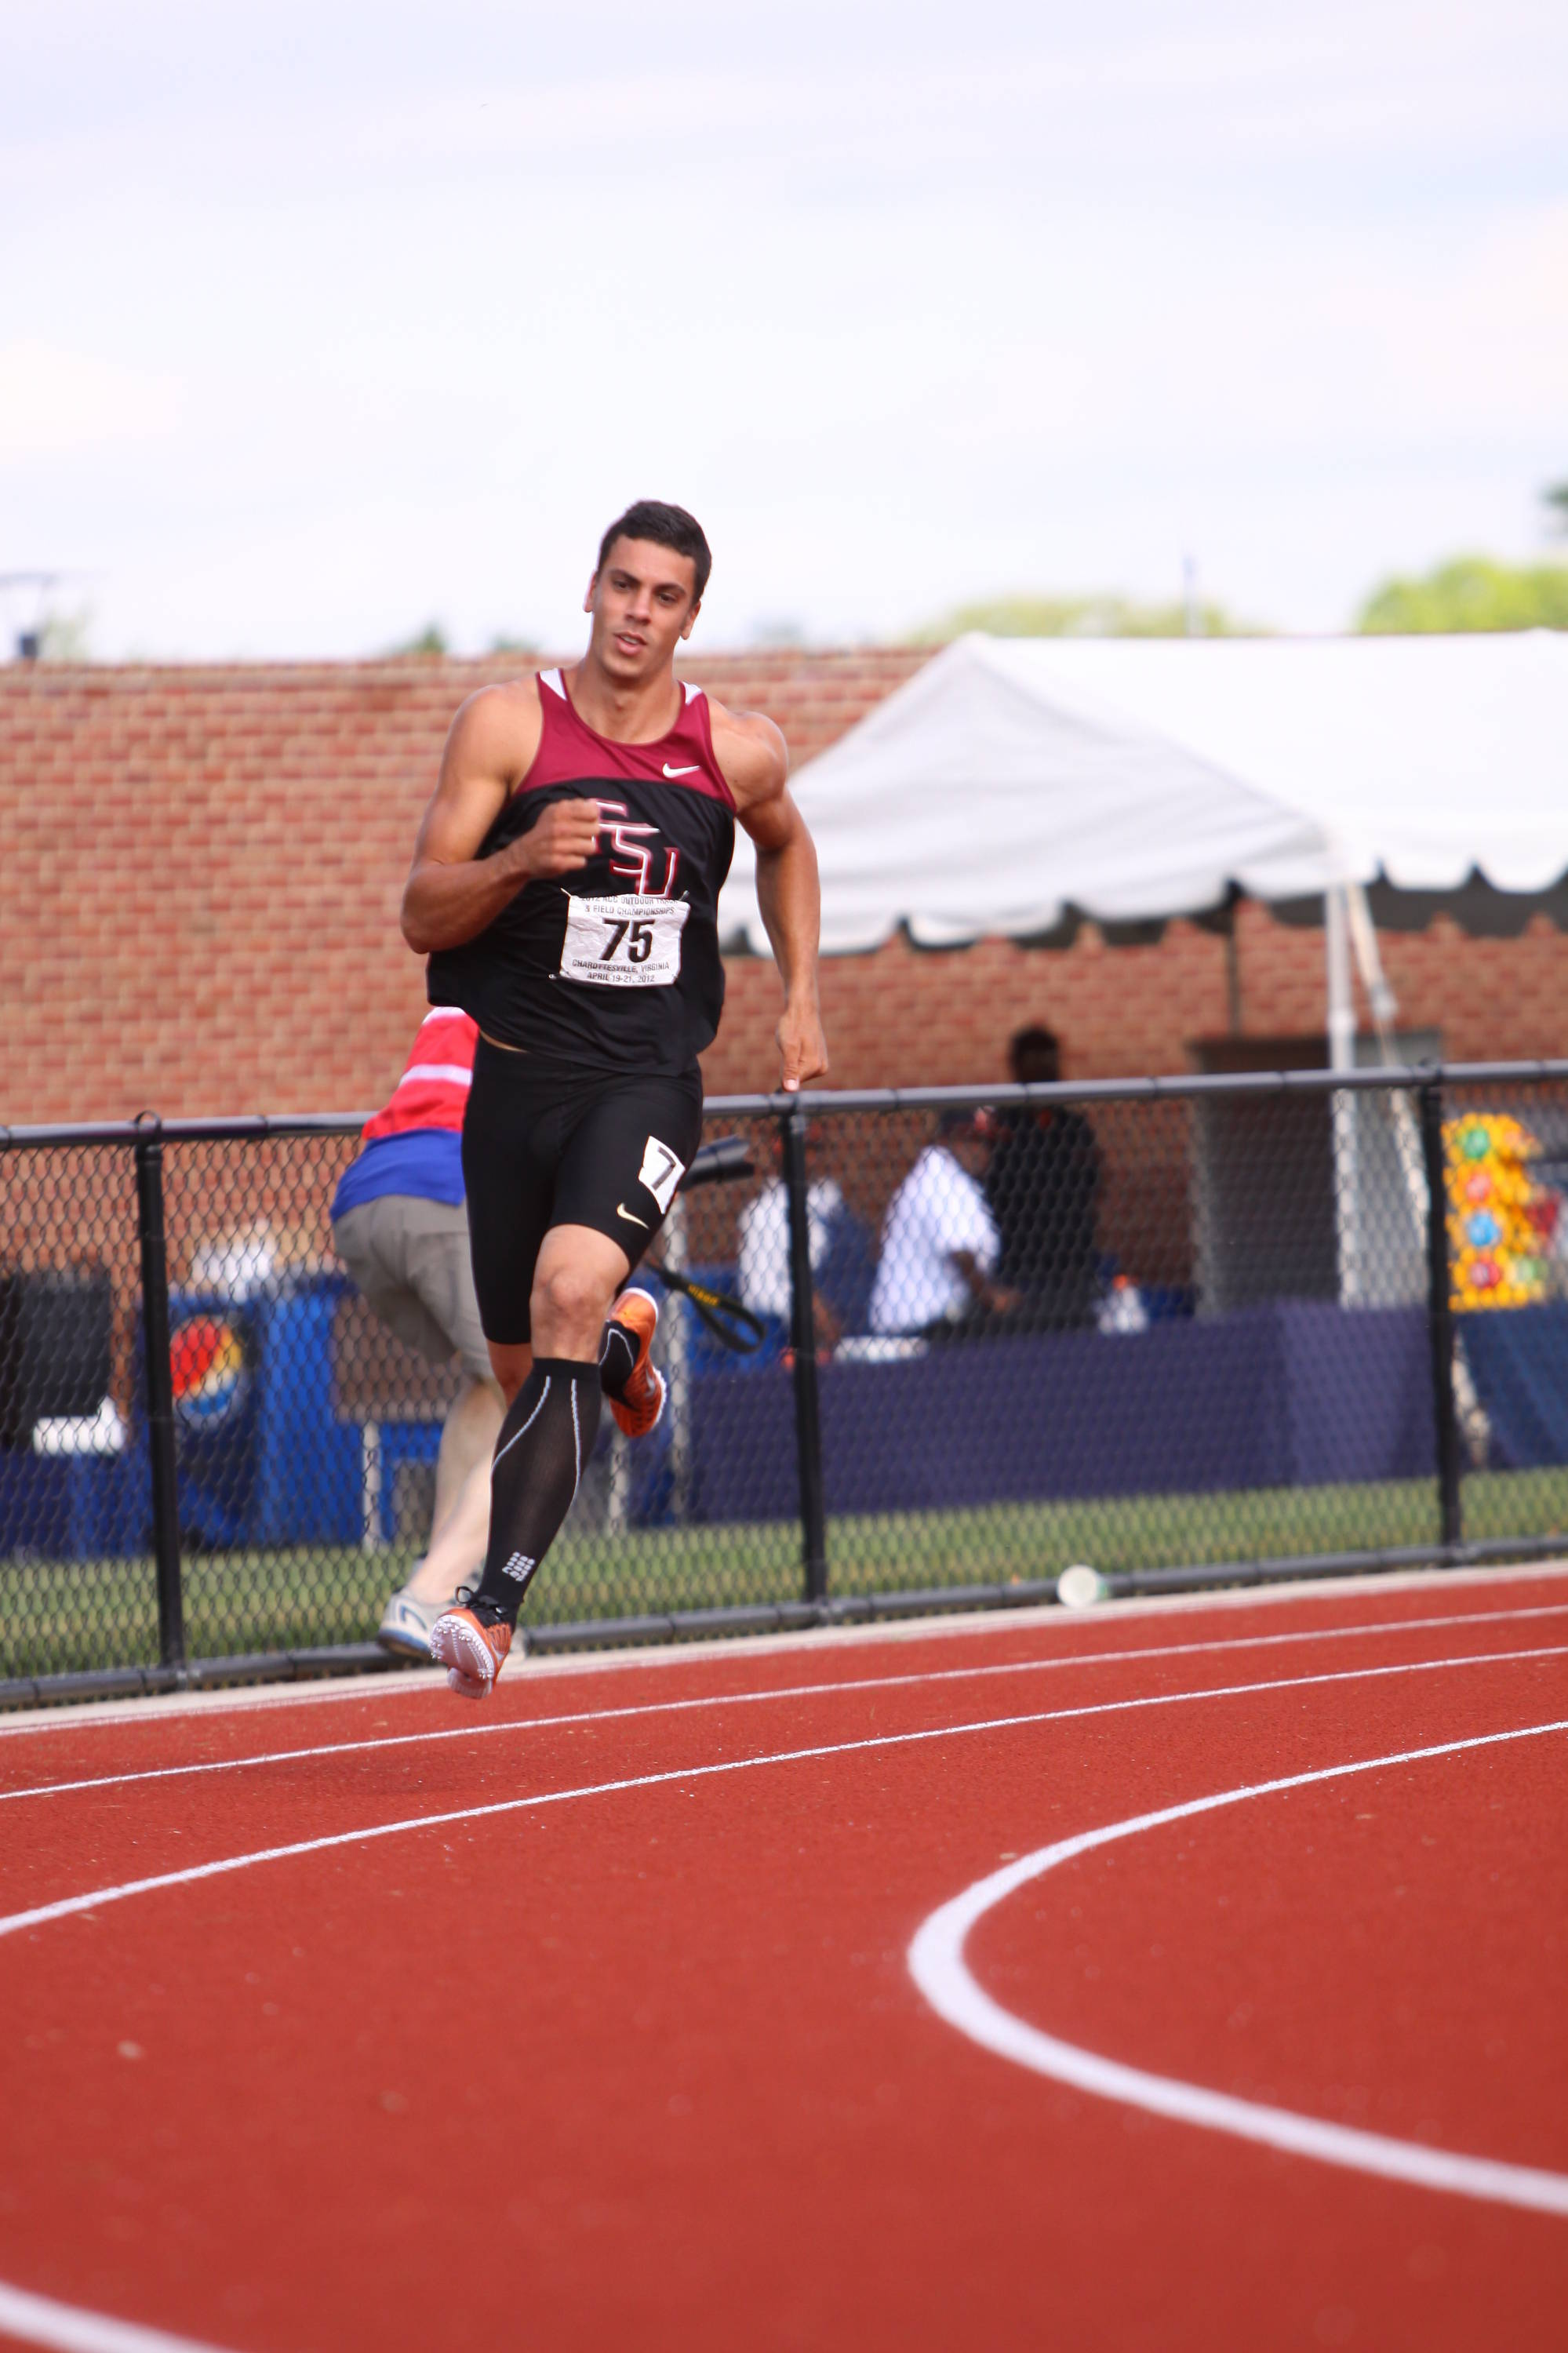 The 400-meter dash led to another lead change as Barroilhet scored 776 points for his 50.48 time, while Beach ran a blistering 46.96 for 960 points. At the end of Day 1, Beach held a nine-point lead over Barroilhet, 4060-4051.